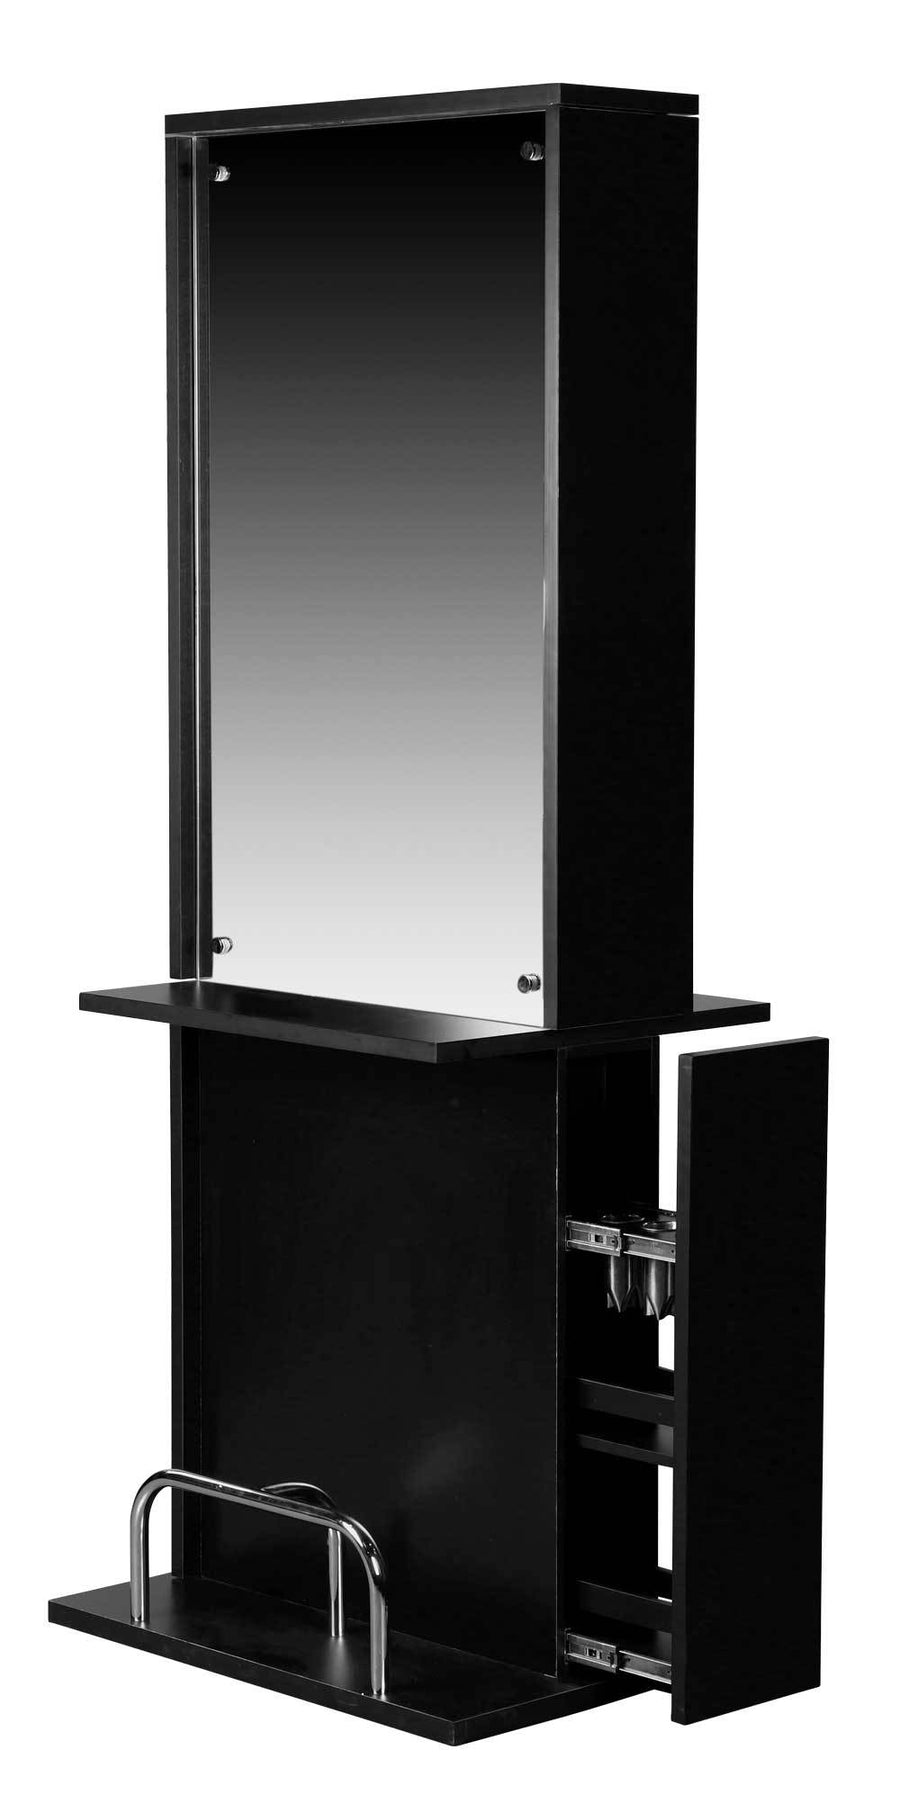 "Icarus ""Libby"" Black Salon Styling Station With Mirror Styling Stations & Cabinets Icarus"